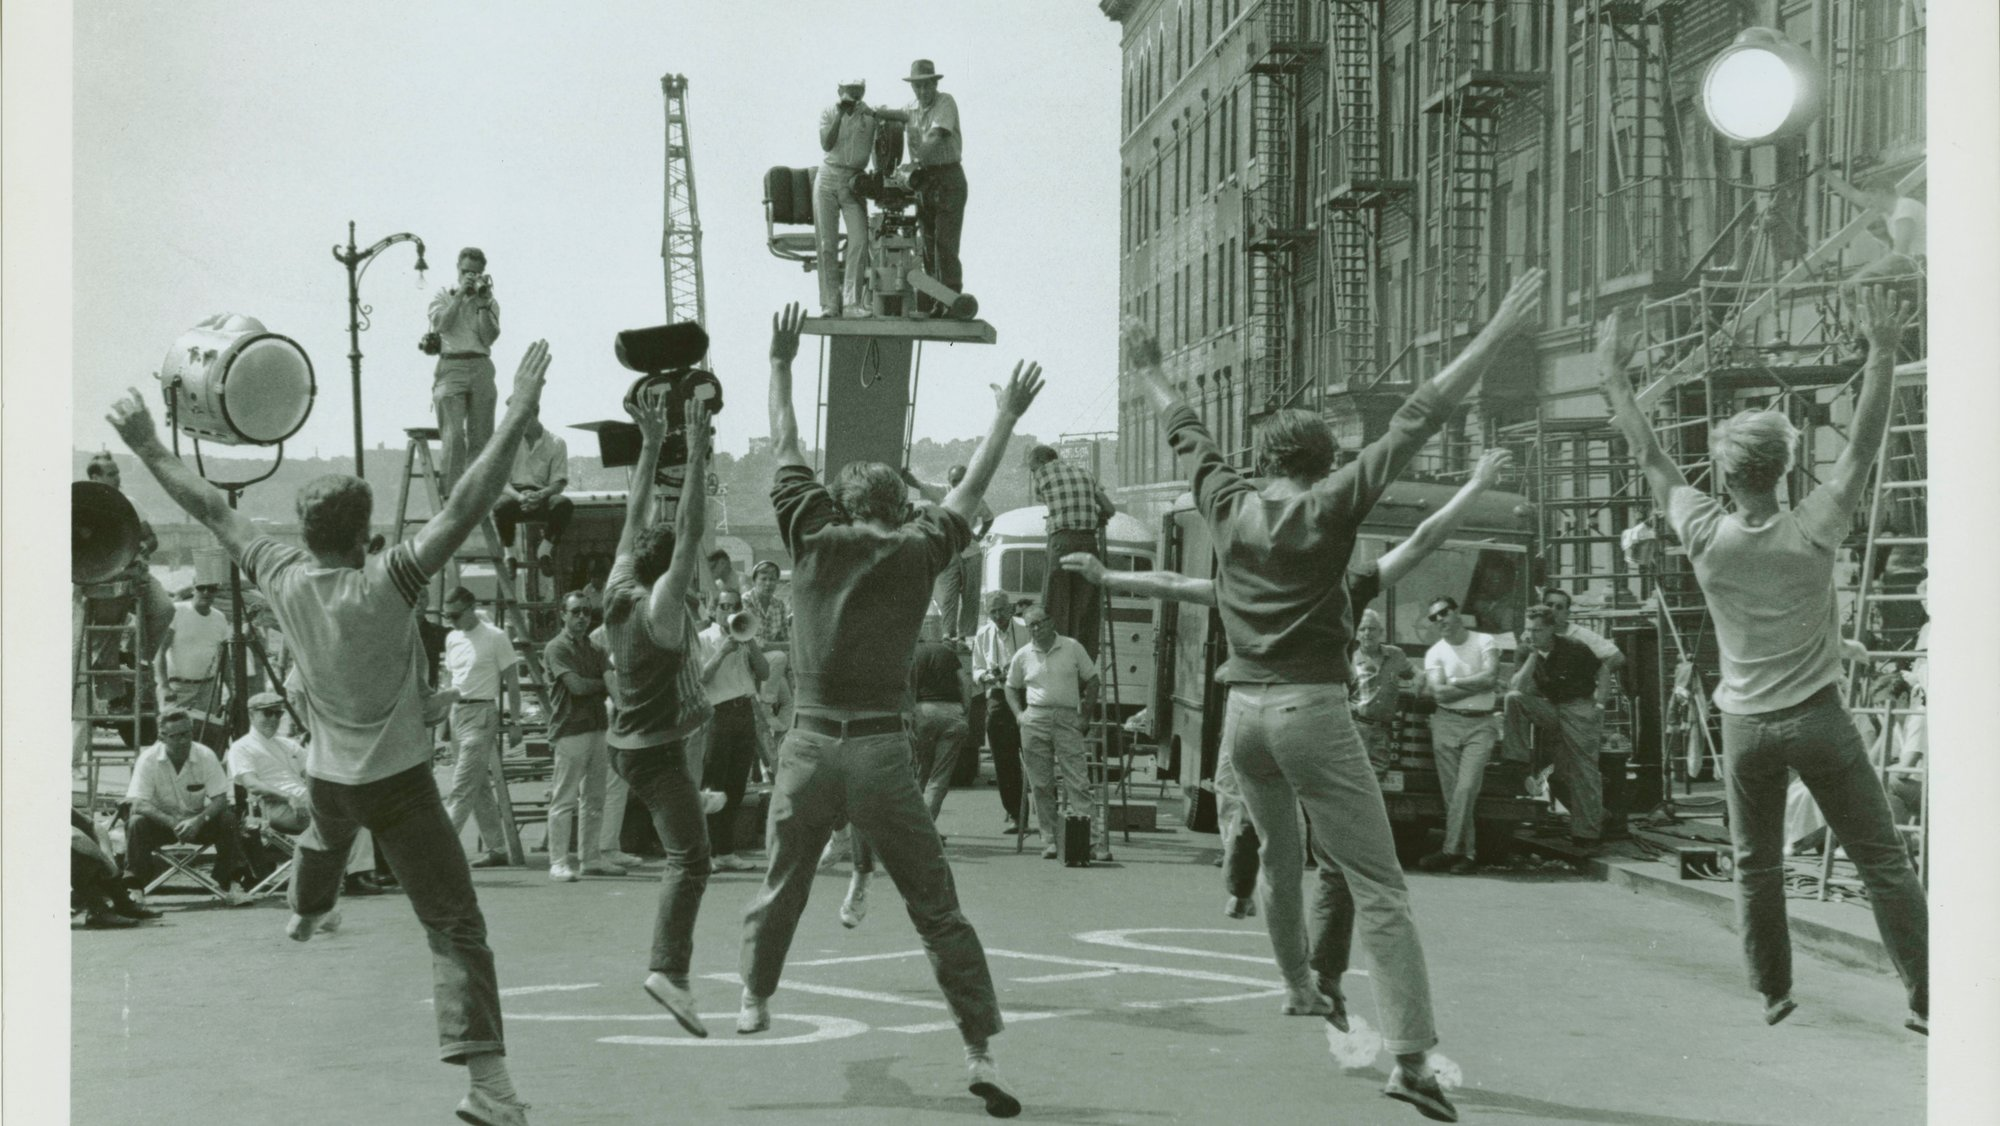 West Side Story dancers on the NYC streets _NYPL (1).jpg